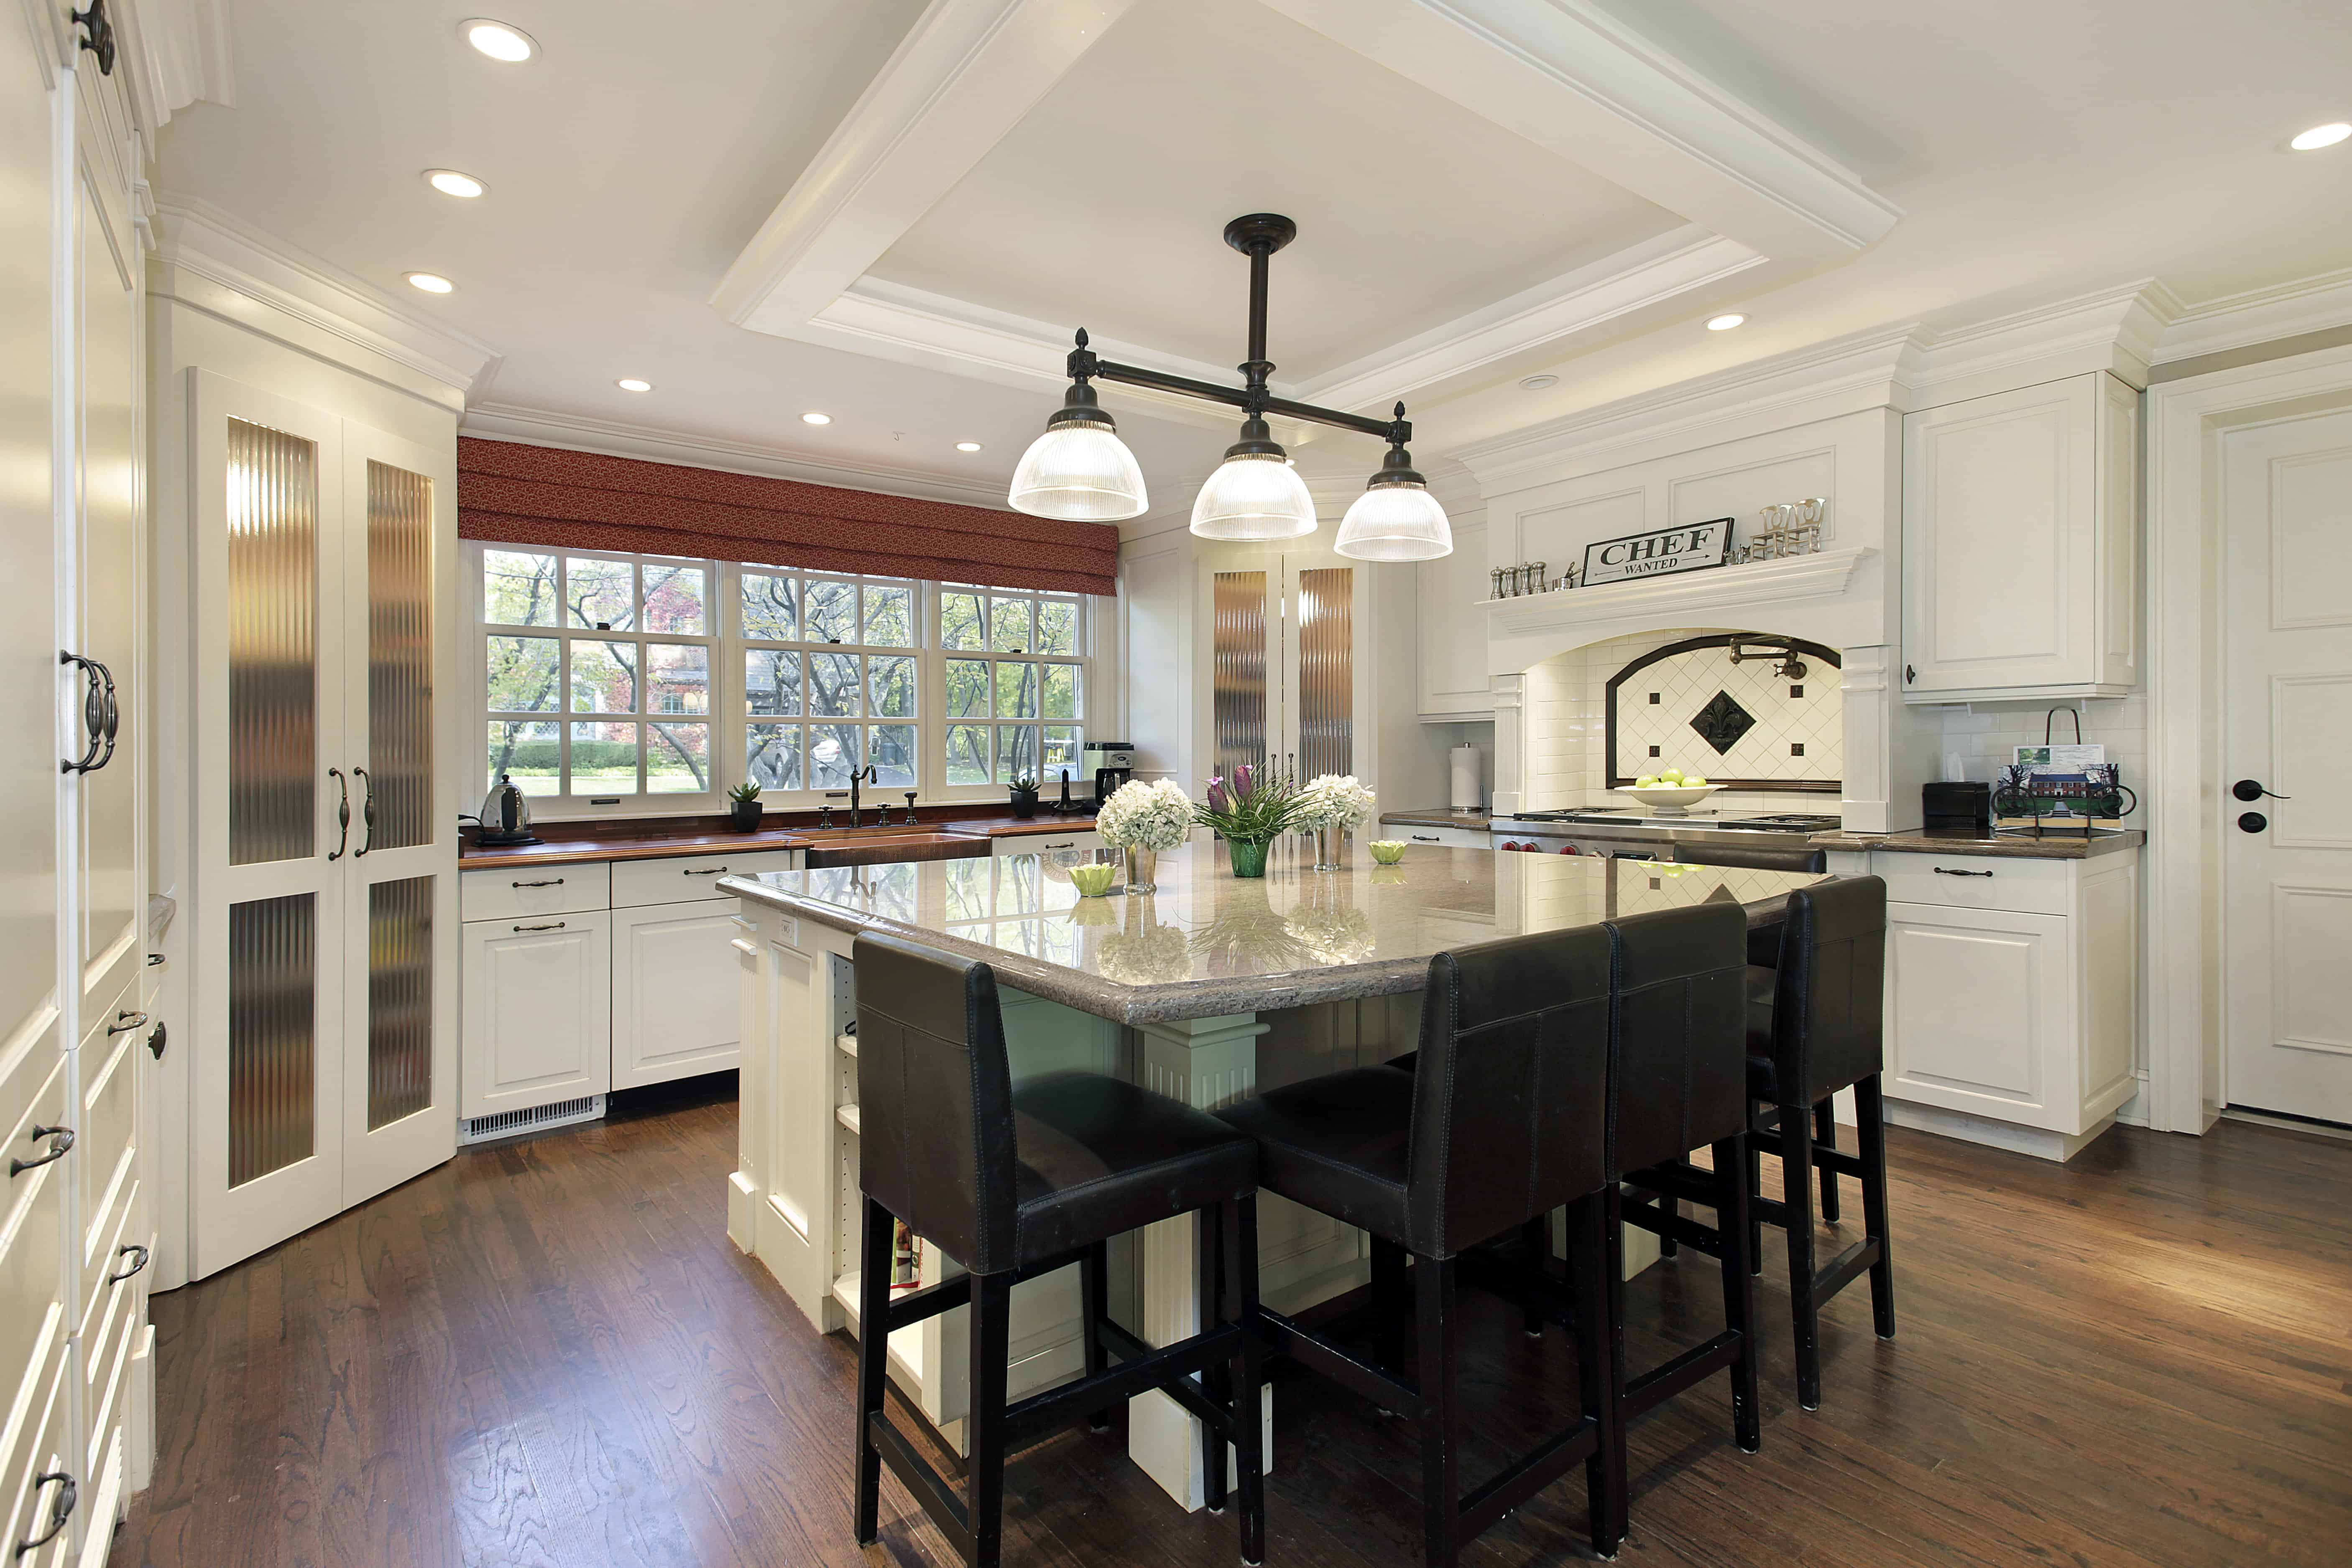 Large kitchen area featuring hardwood flooring and a white ceiling. This kitchen offers a large center island with space for a breakfast bar.